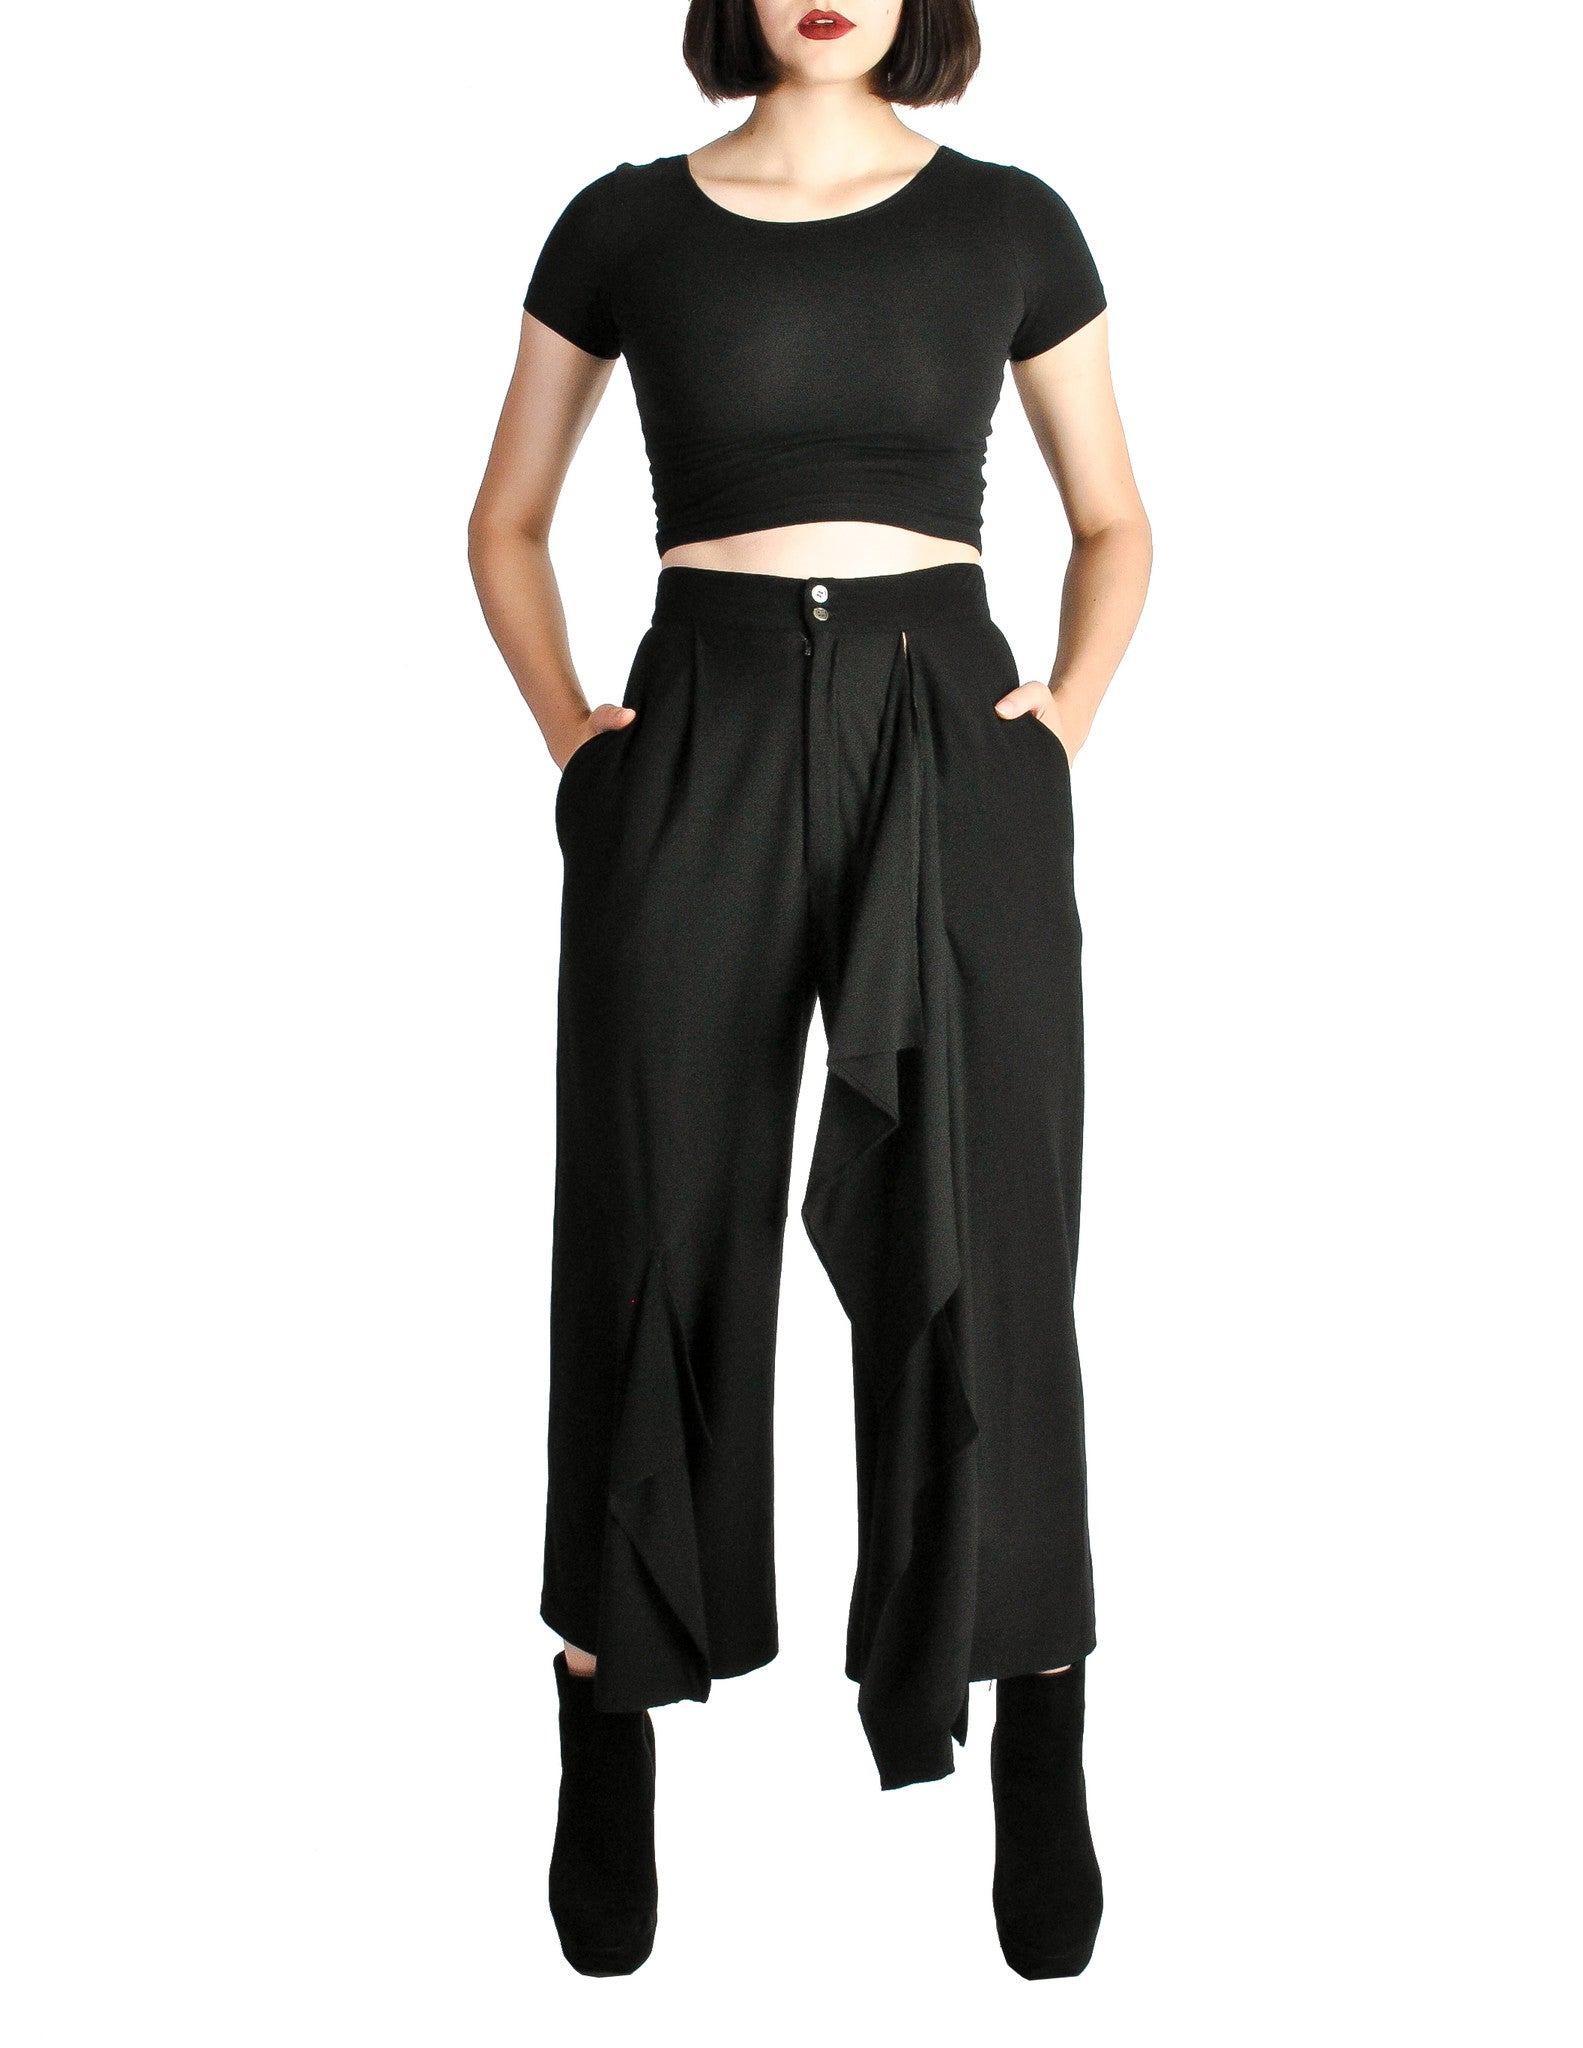 Comme des Garçons Vintage Black Wool Cropped Pants - Amarcord Vintage Fashion  - 1